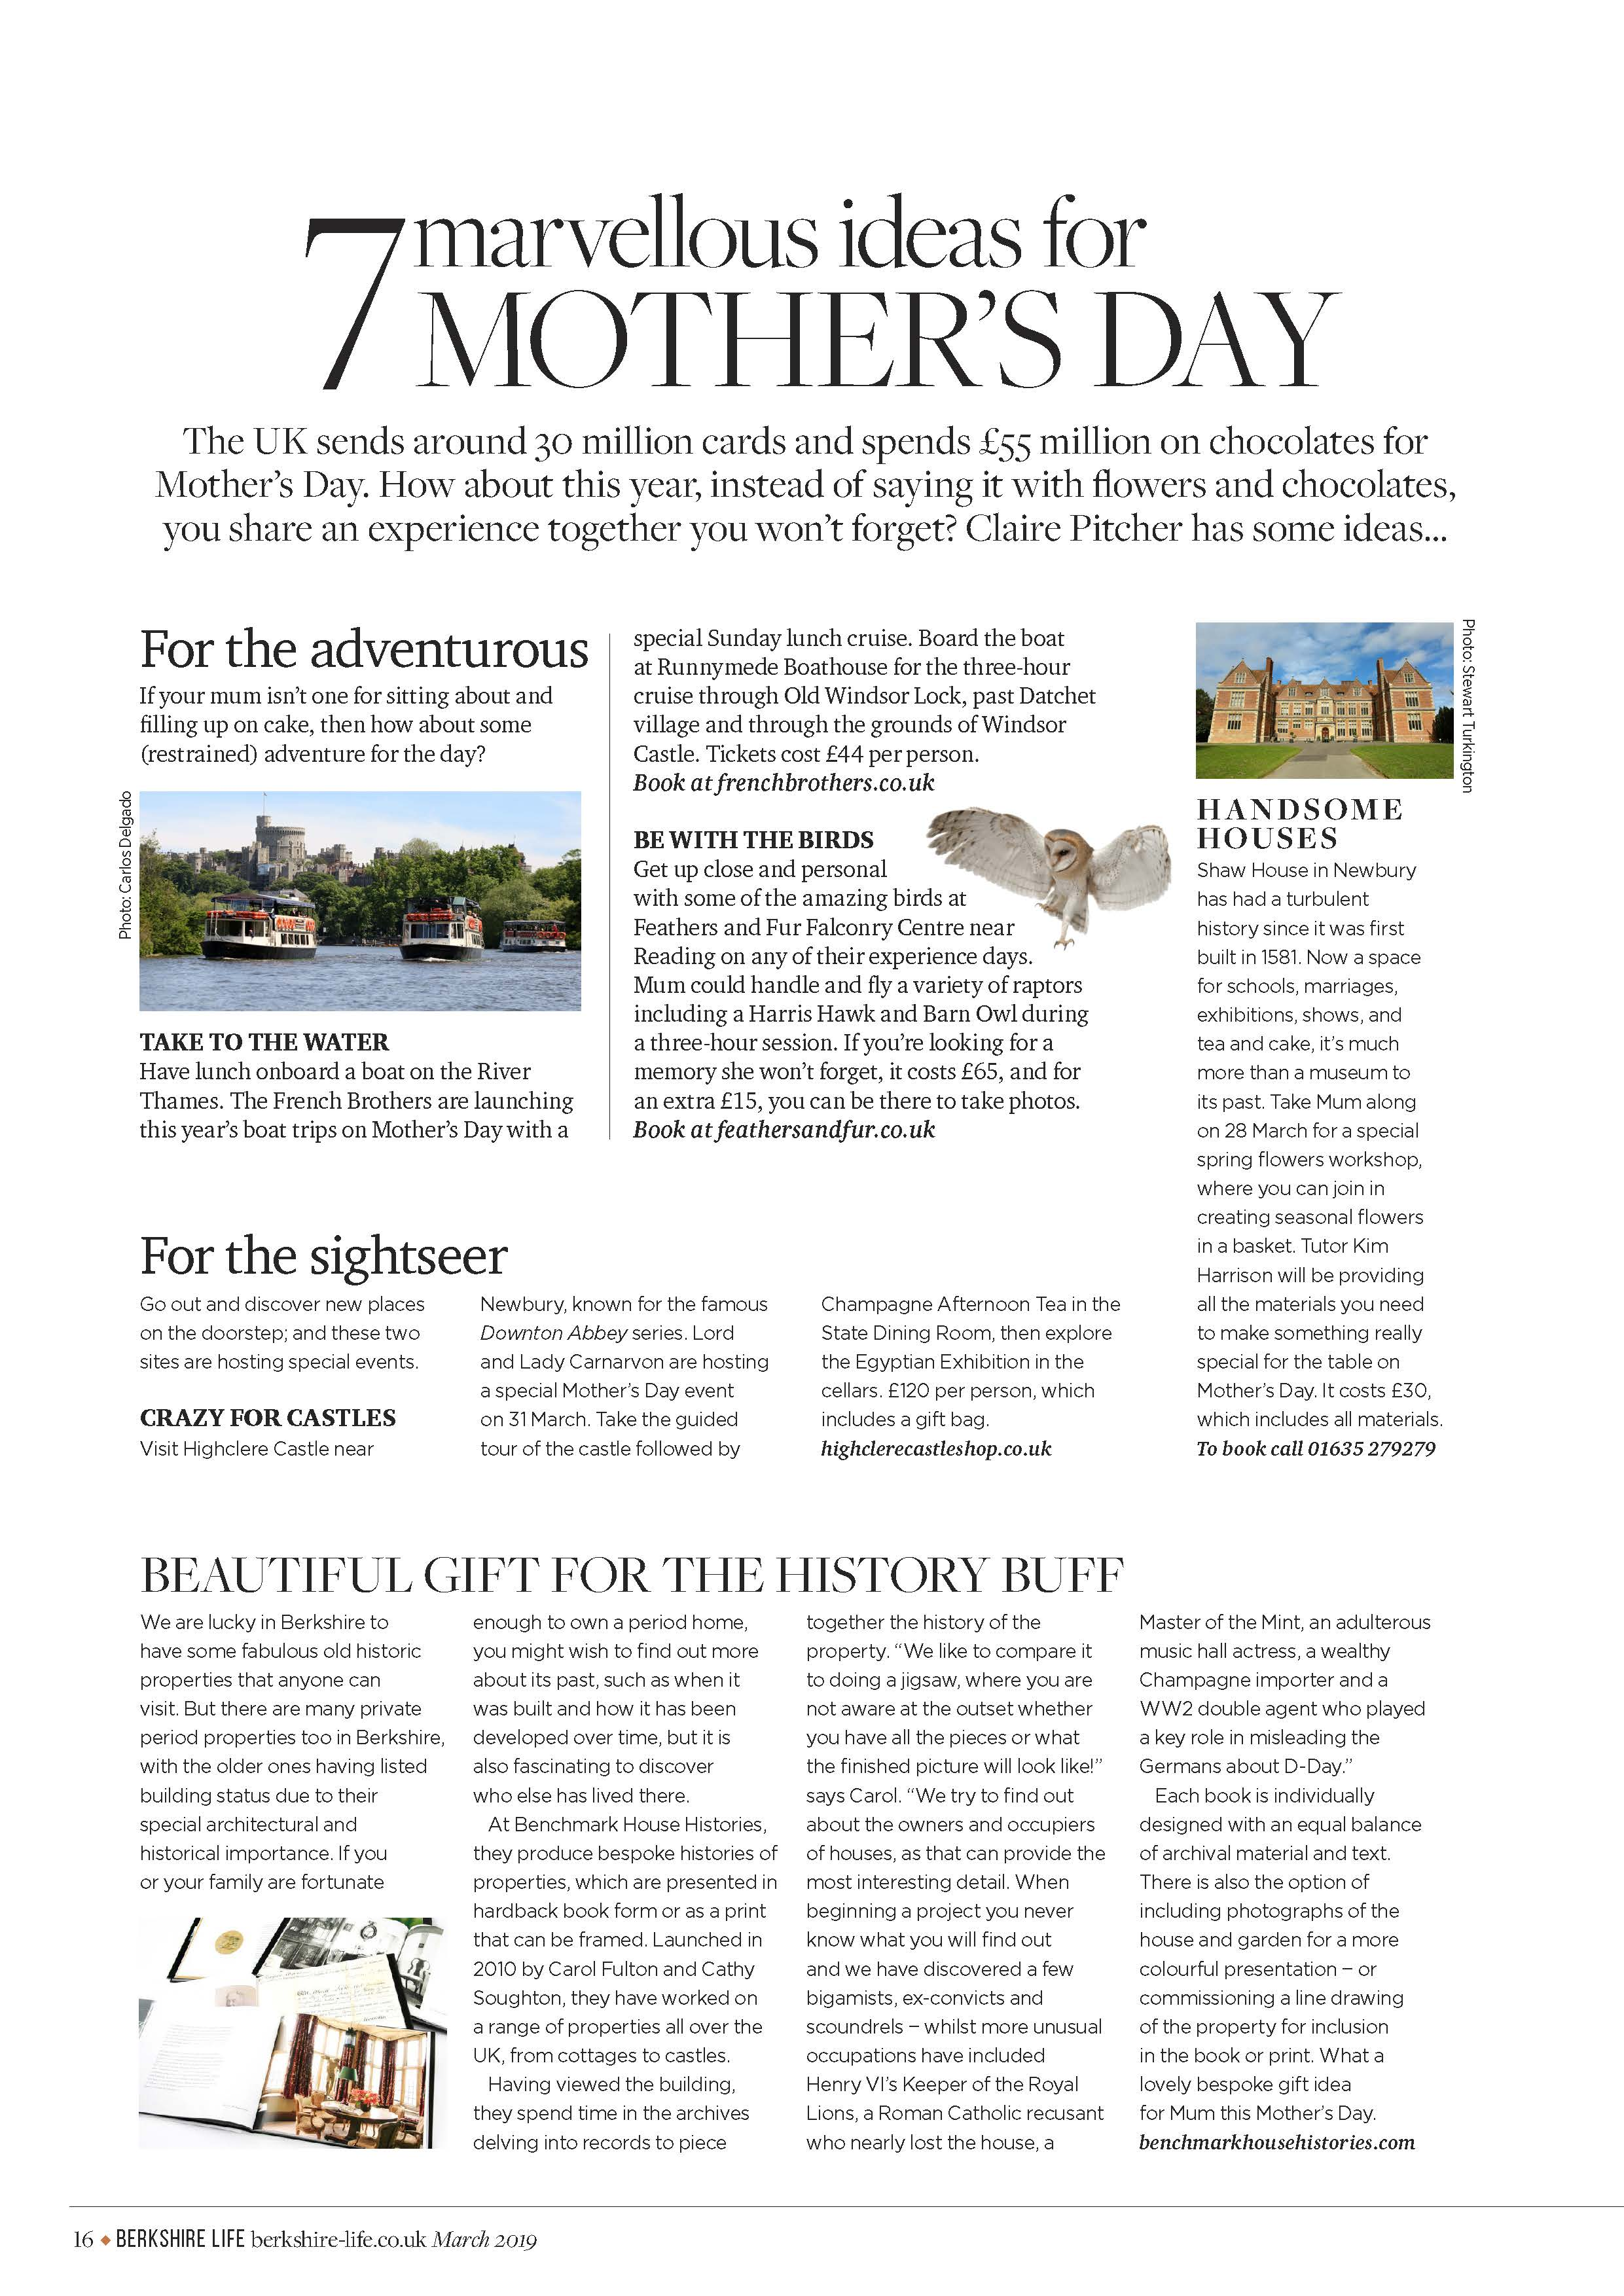 7 MARVELOUS IDEAS FOR MOTHER'S DAY! Berkshire Life - March 2019 issue